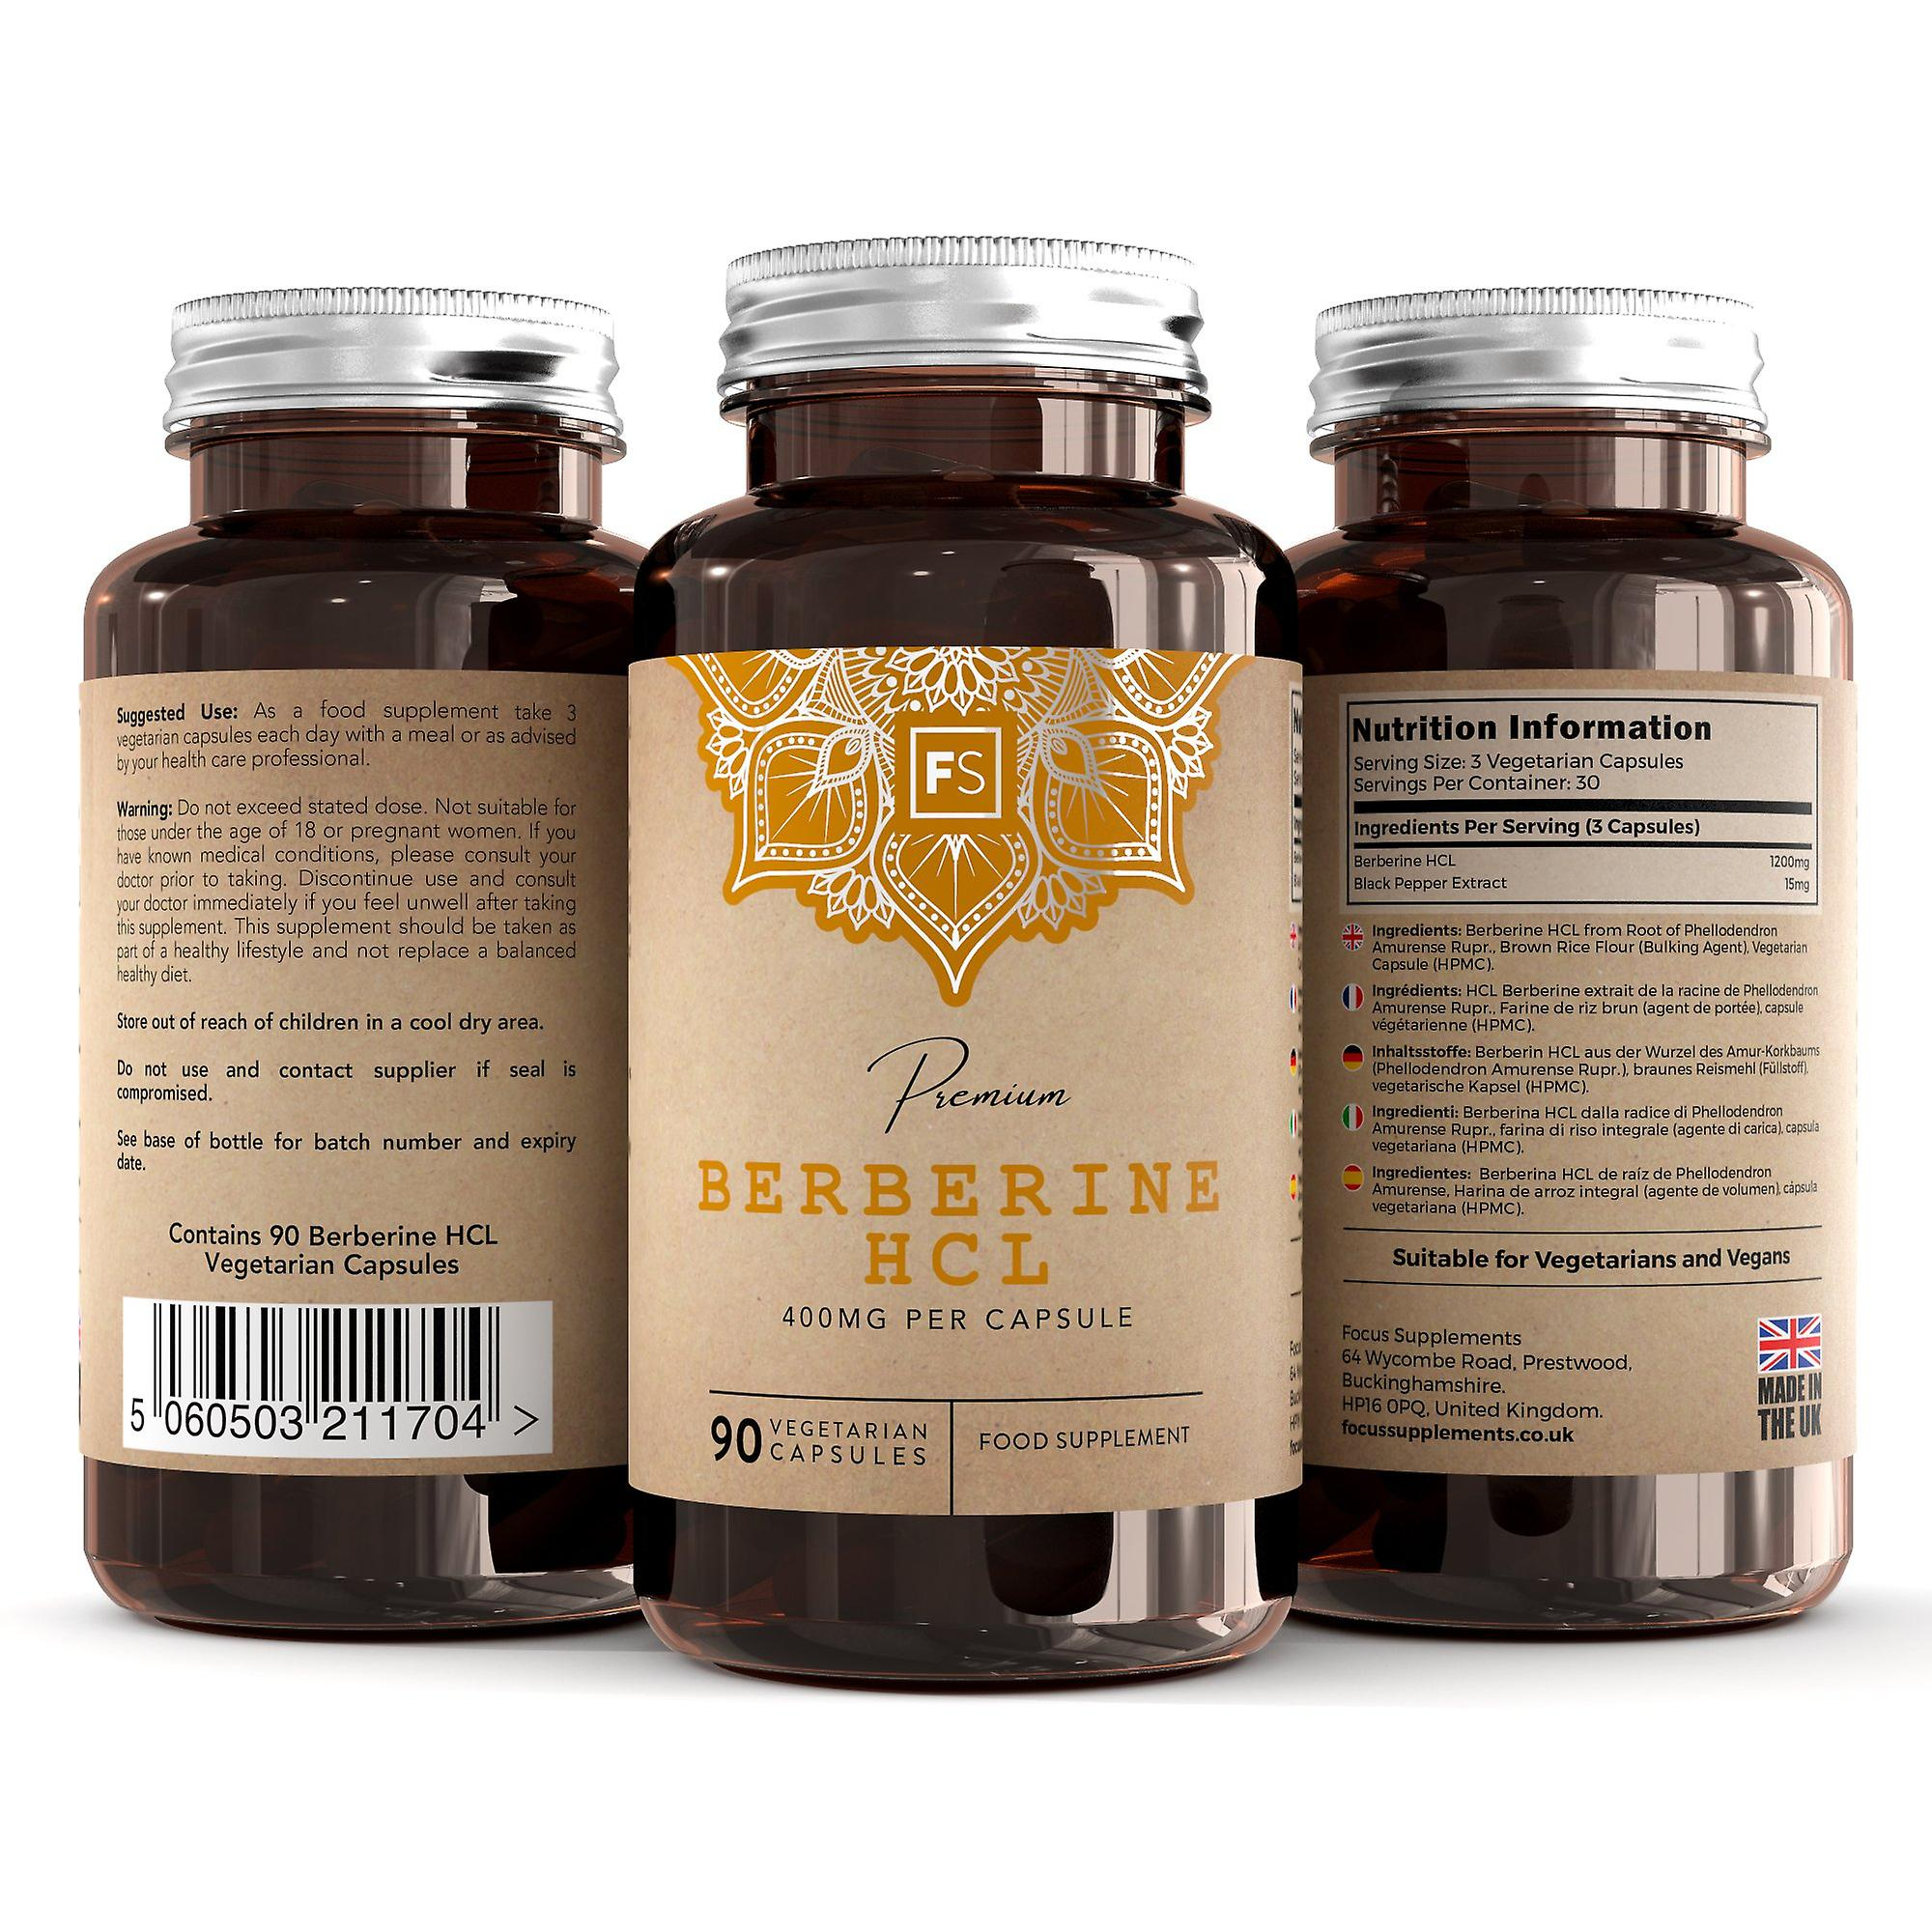 Berberine HCL (With Black Pepper Extract) 400mg - 90 Capsules